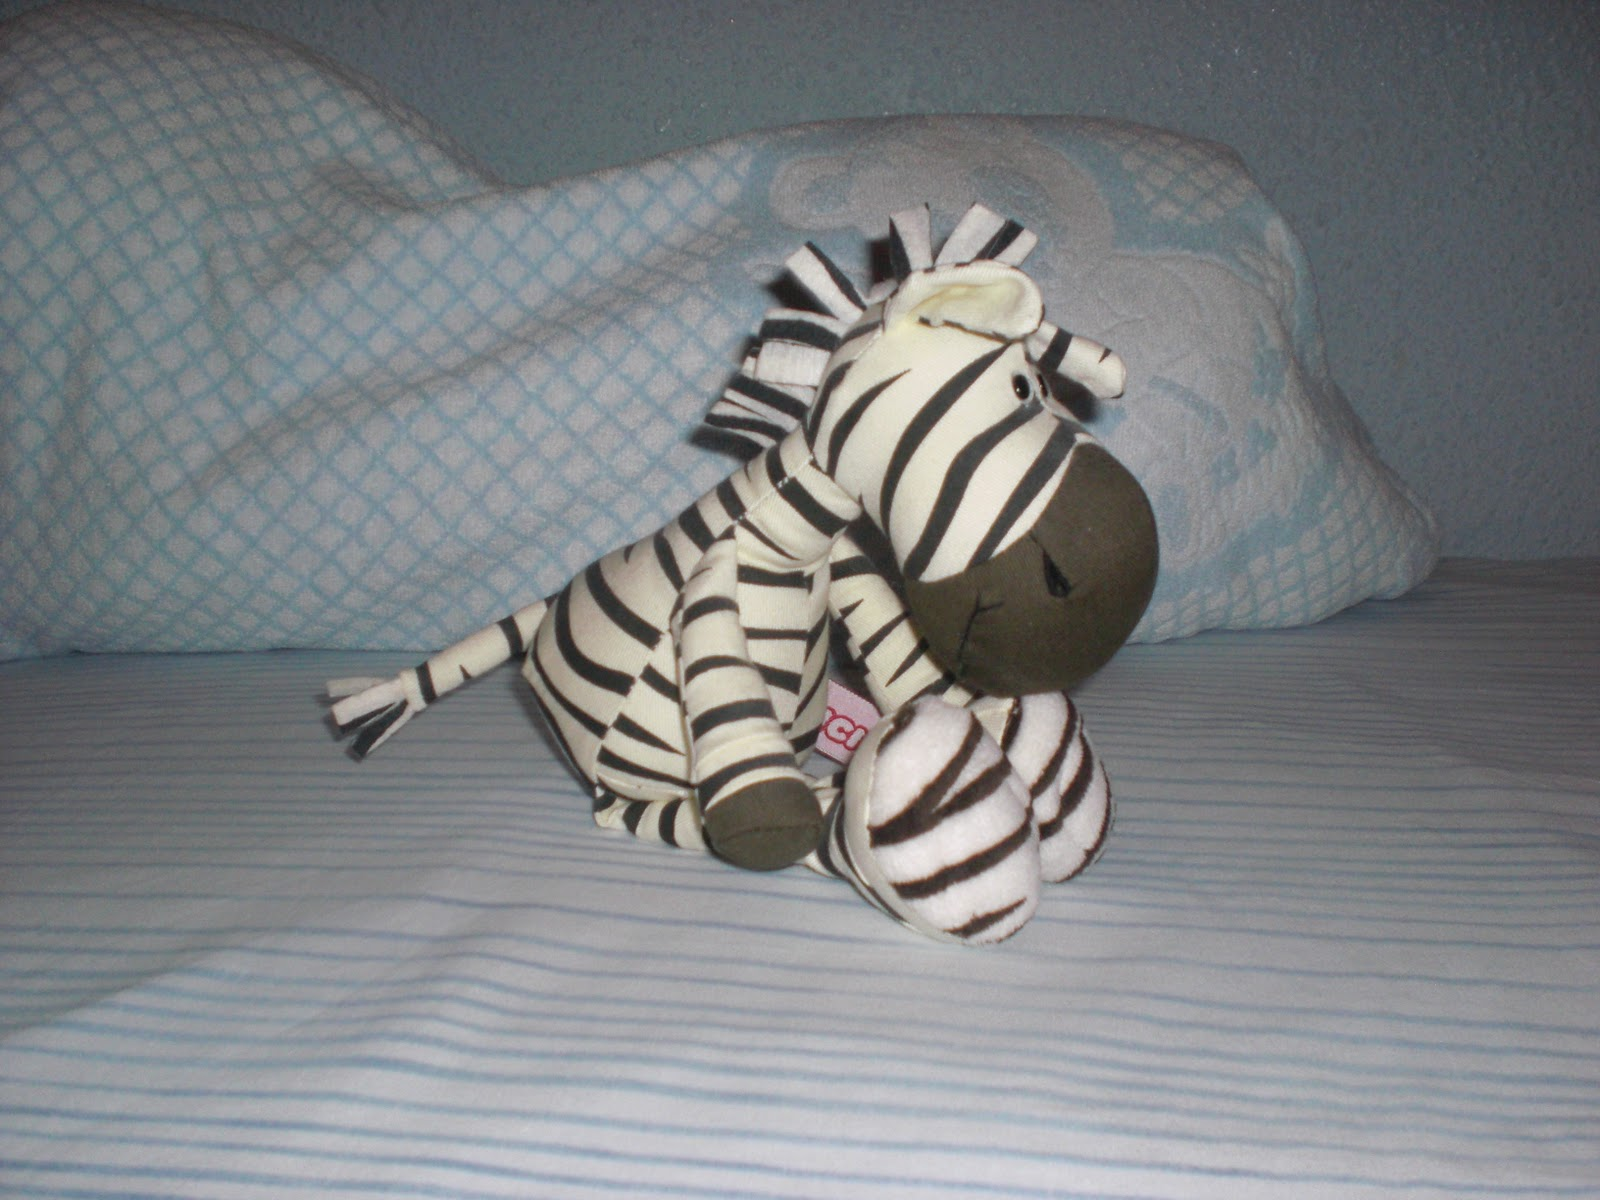 Mis peluches: La cebra - My stuffed animals: Zebra